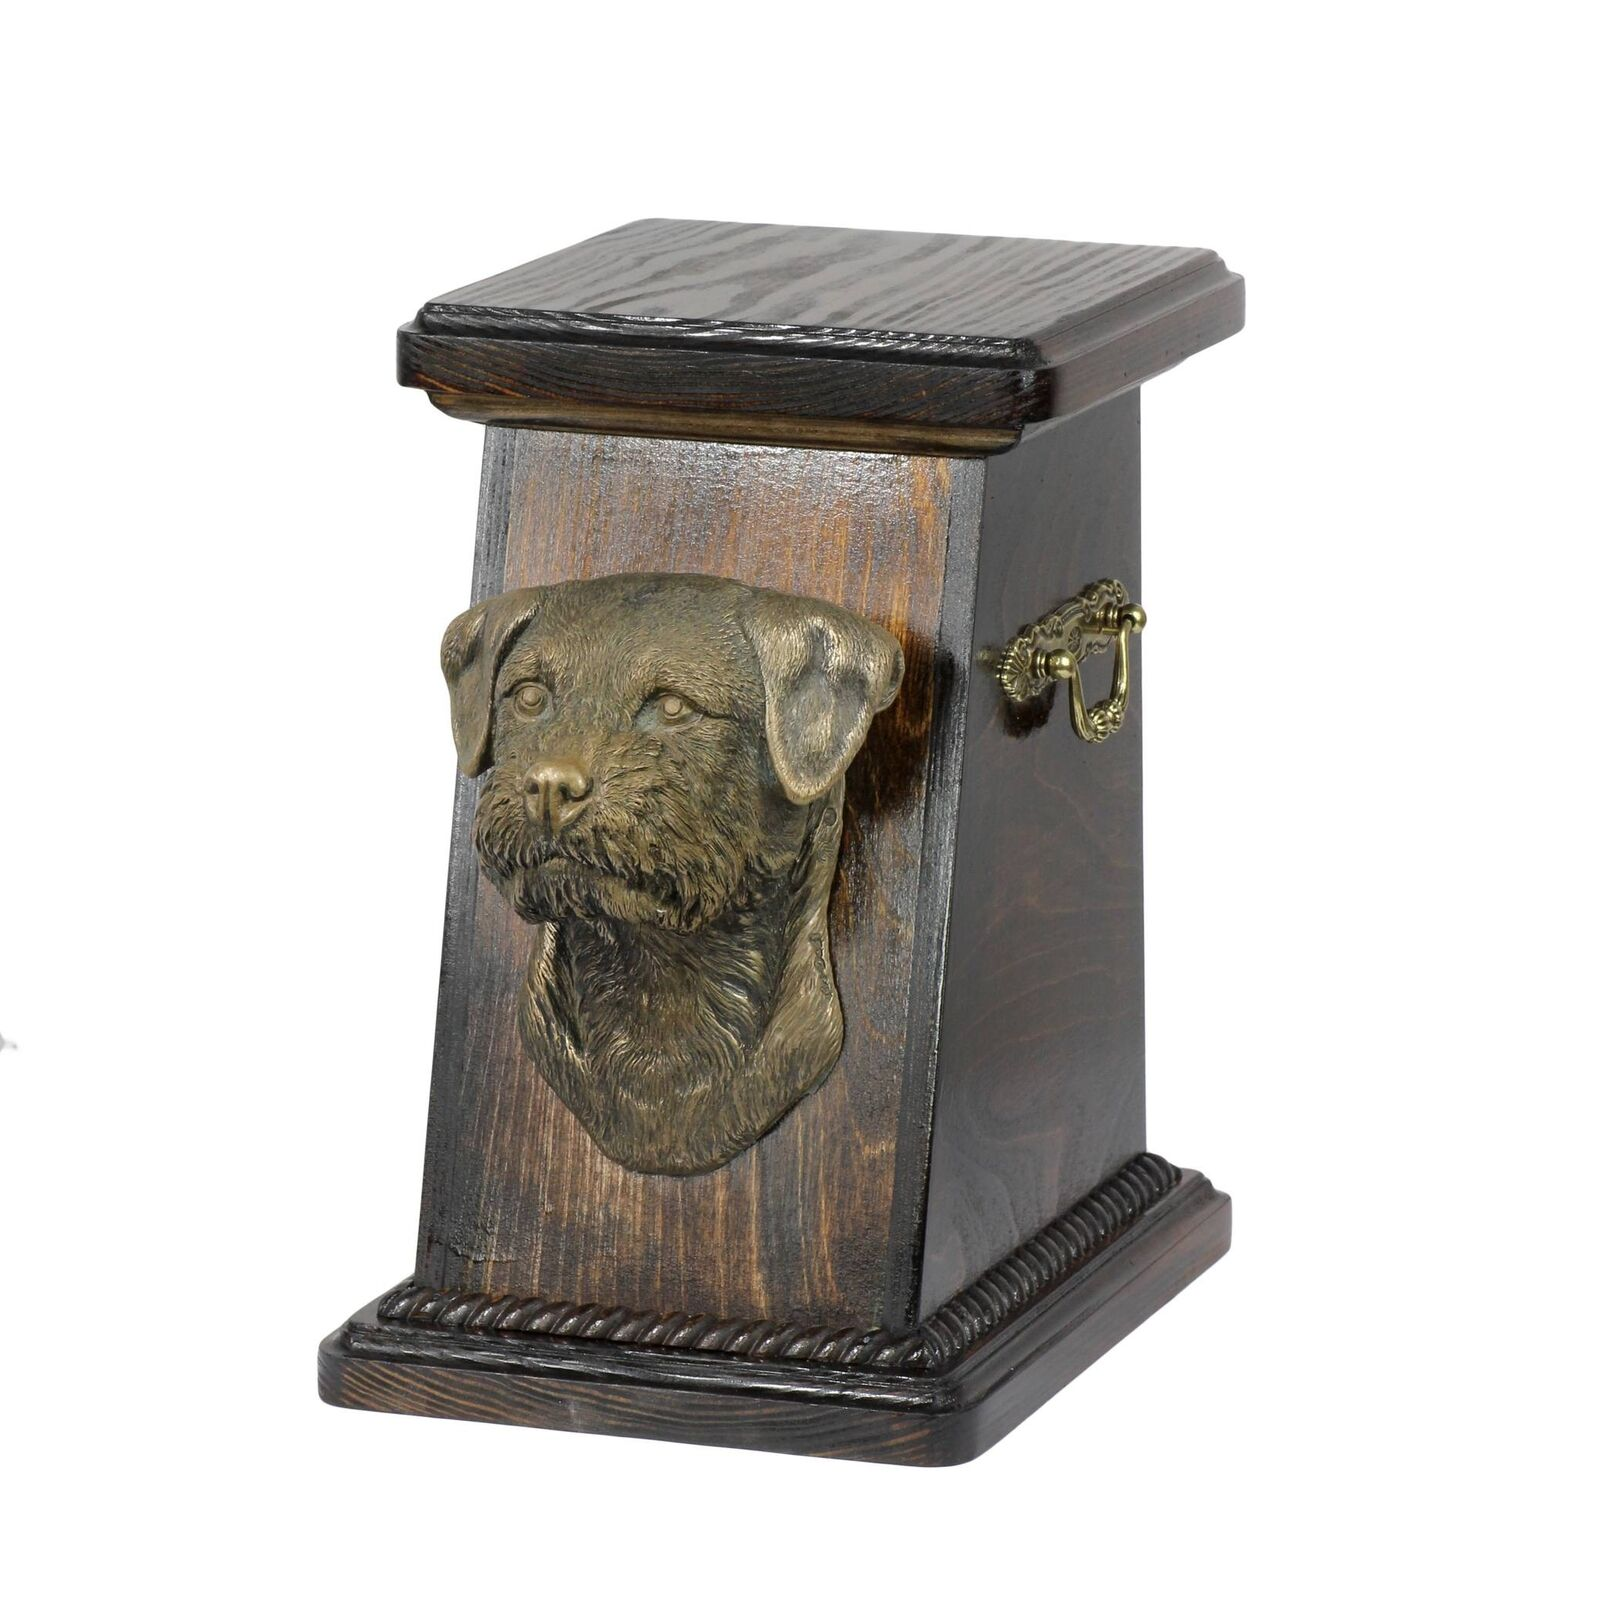 Border Terrier - exclusive urn for dog with statue, Art Dog type 2